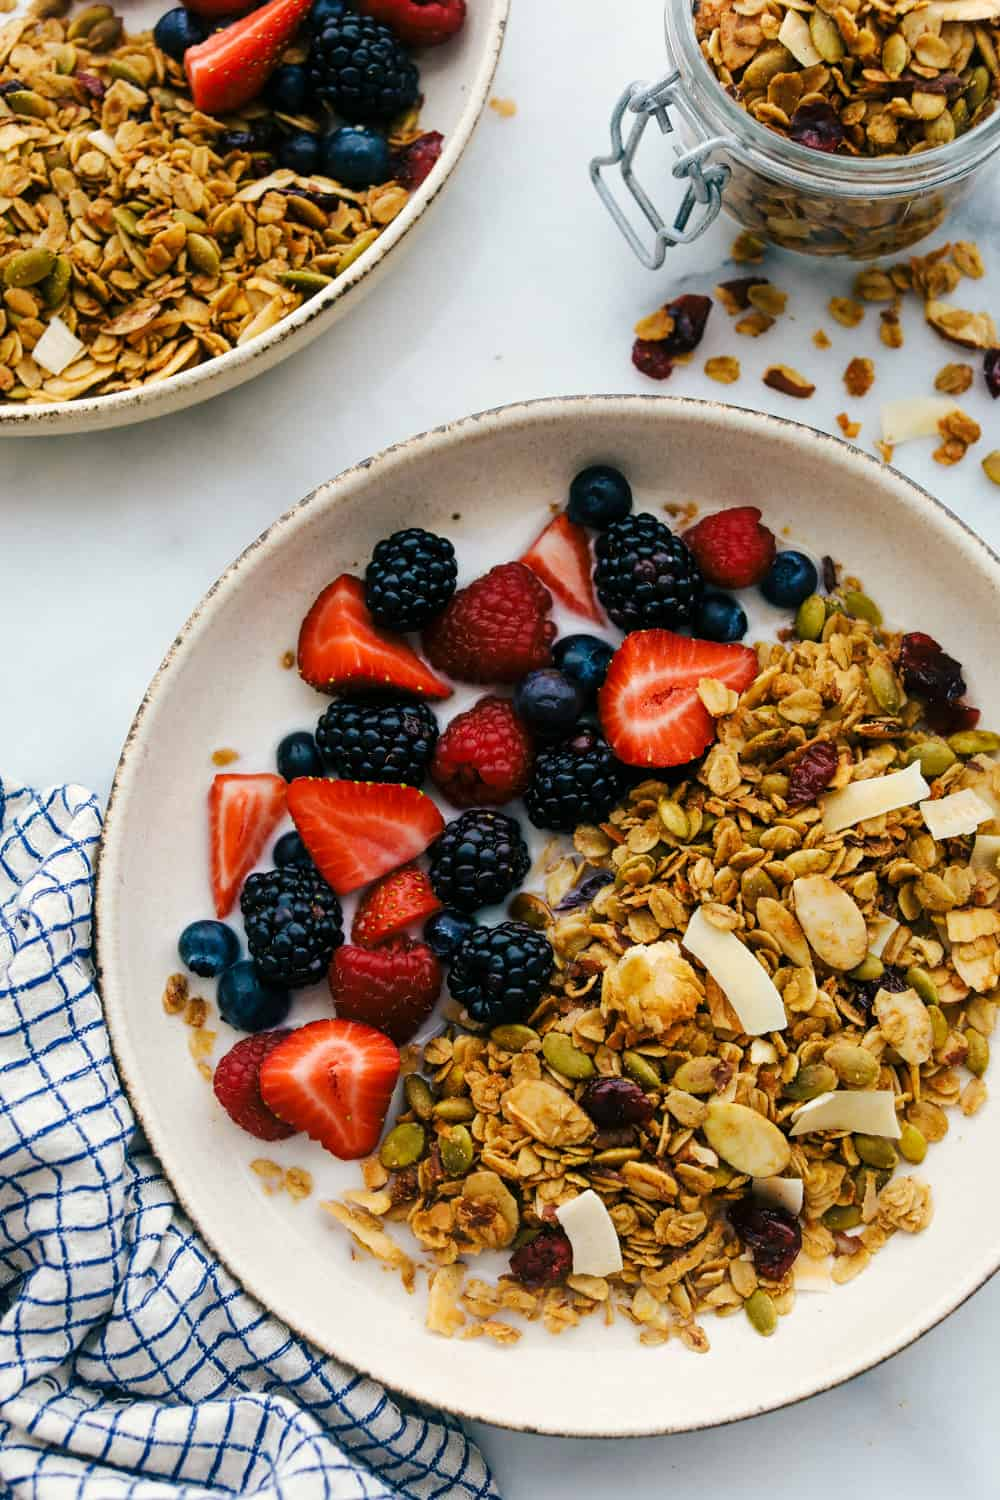 homemade granola in a bowl with fresh fruit and milk.